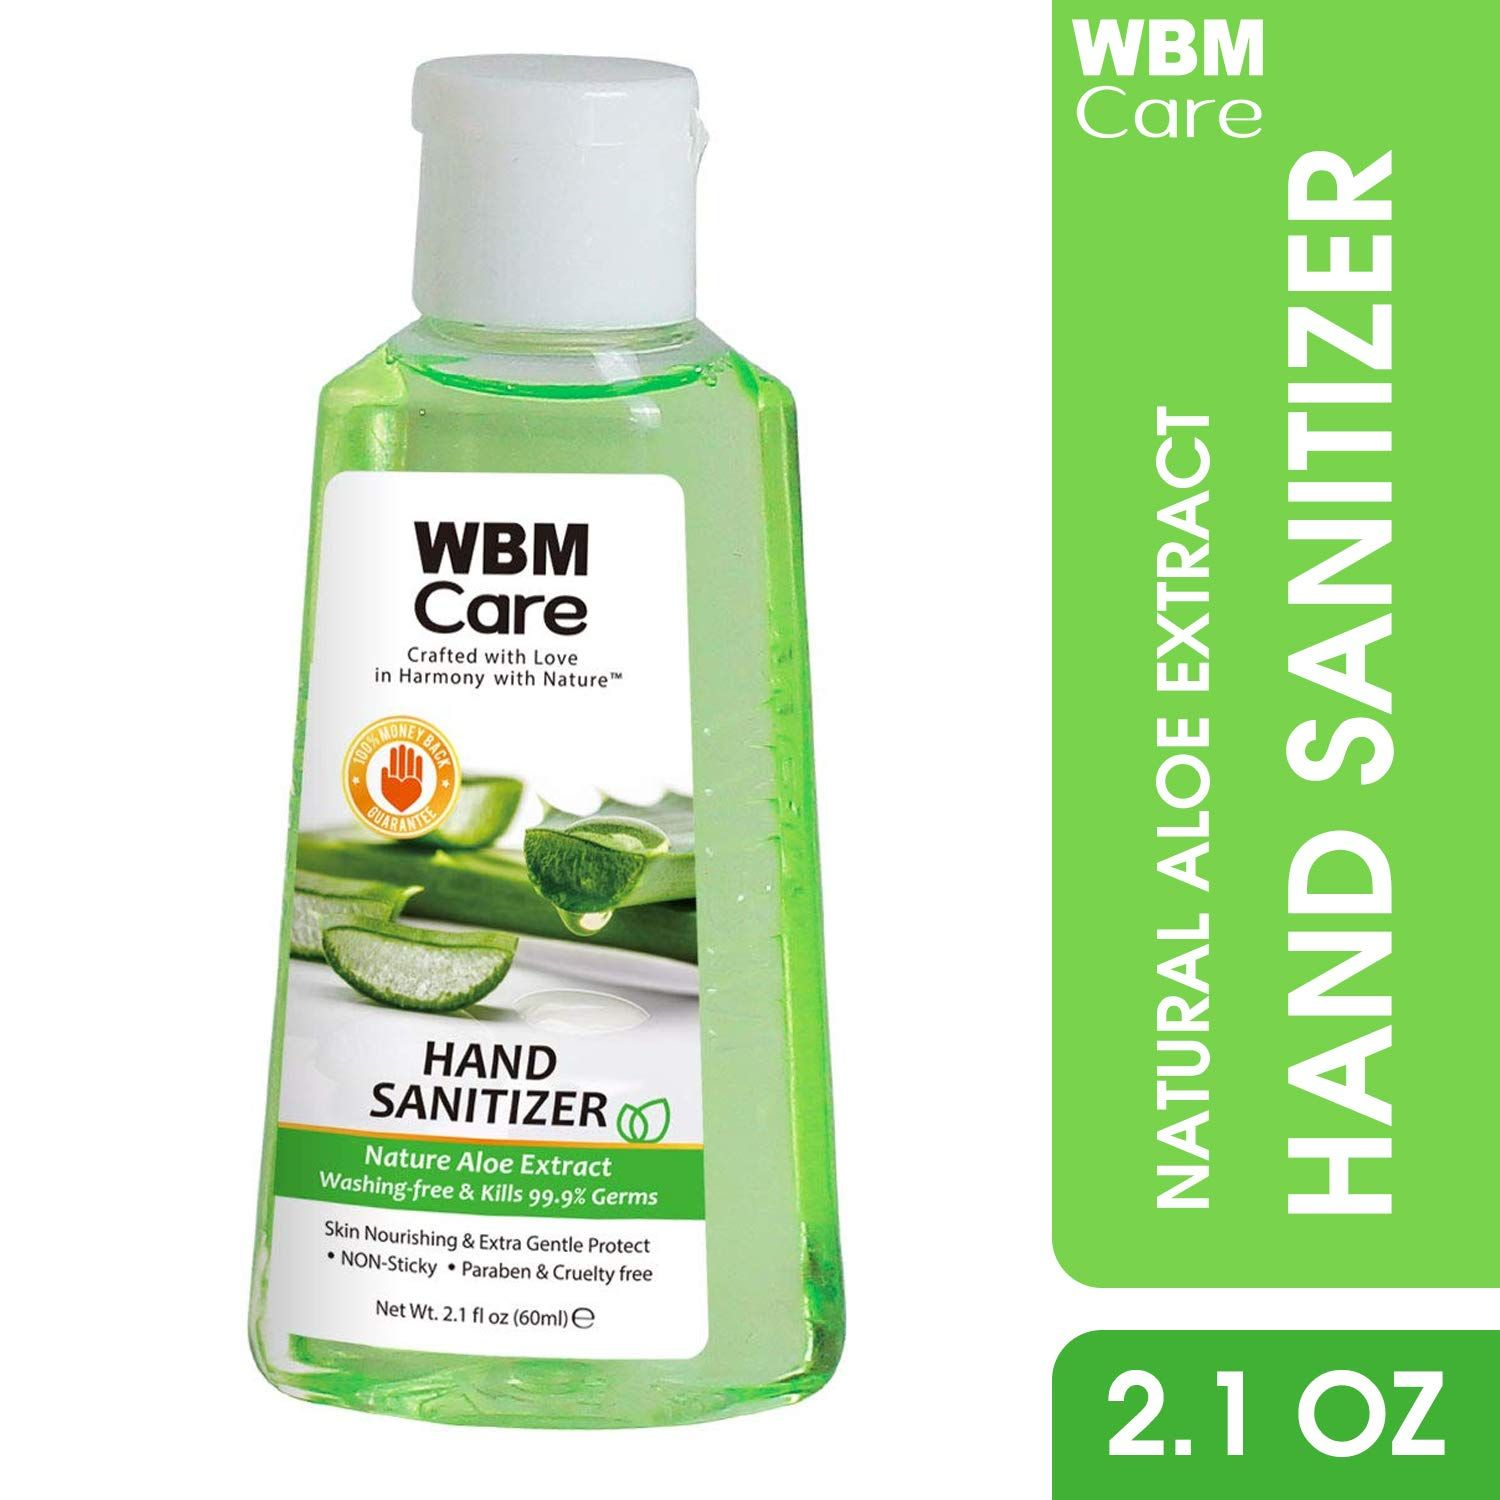 Wbmcare Hand Sanitizer Easy To Keep Hands Clean Conditioned When